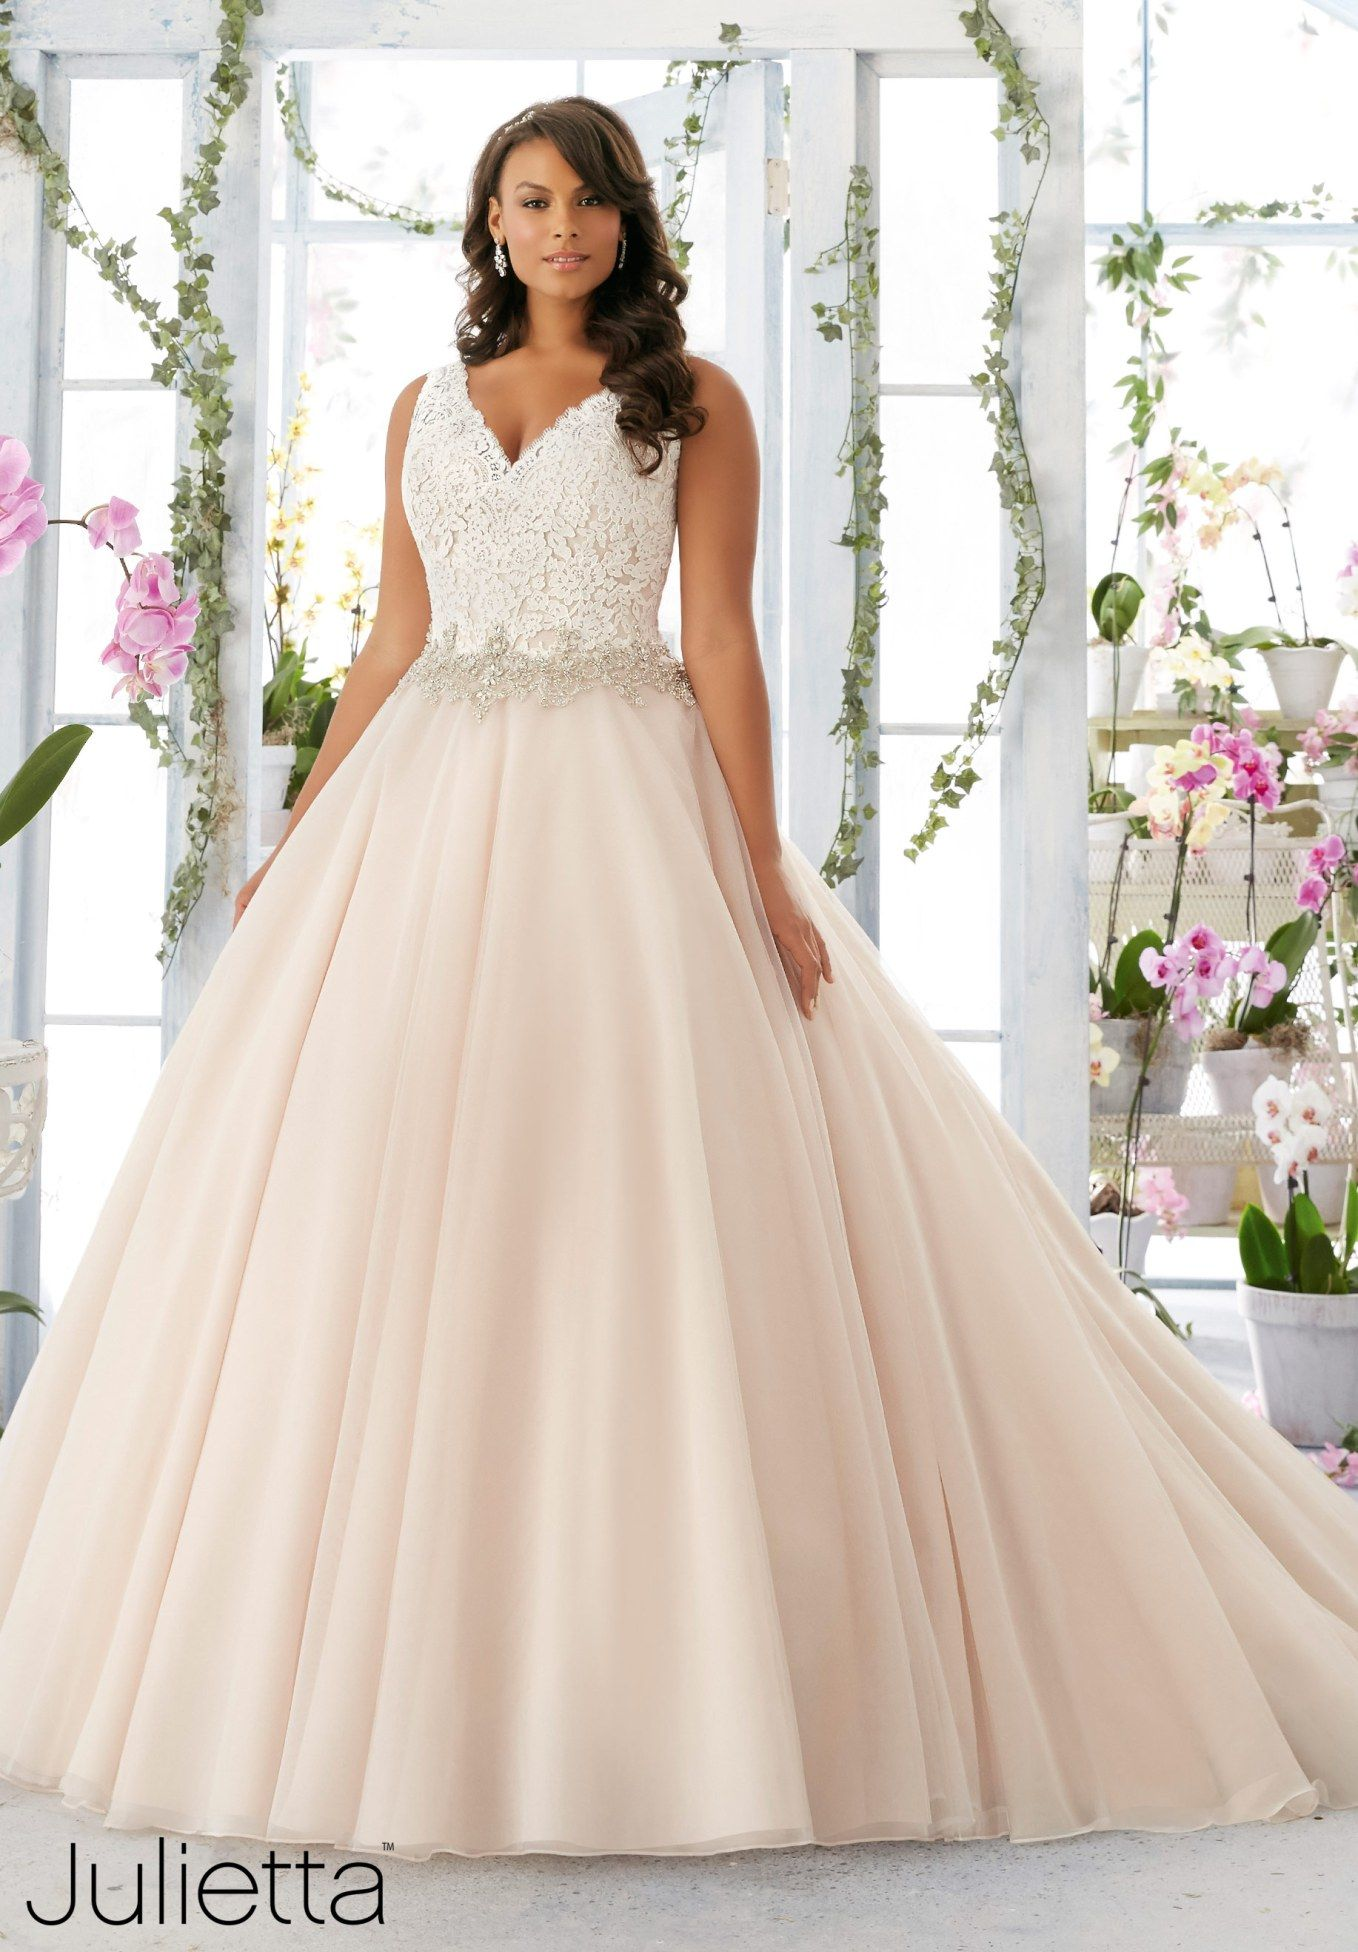 Wedding dresses for curvy brides  I absolutely love this collection by Mori Lee Julietta is their